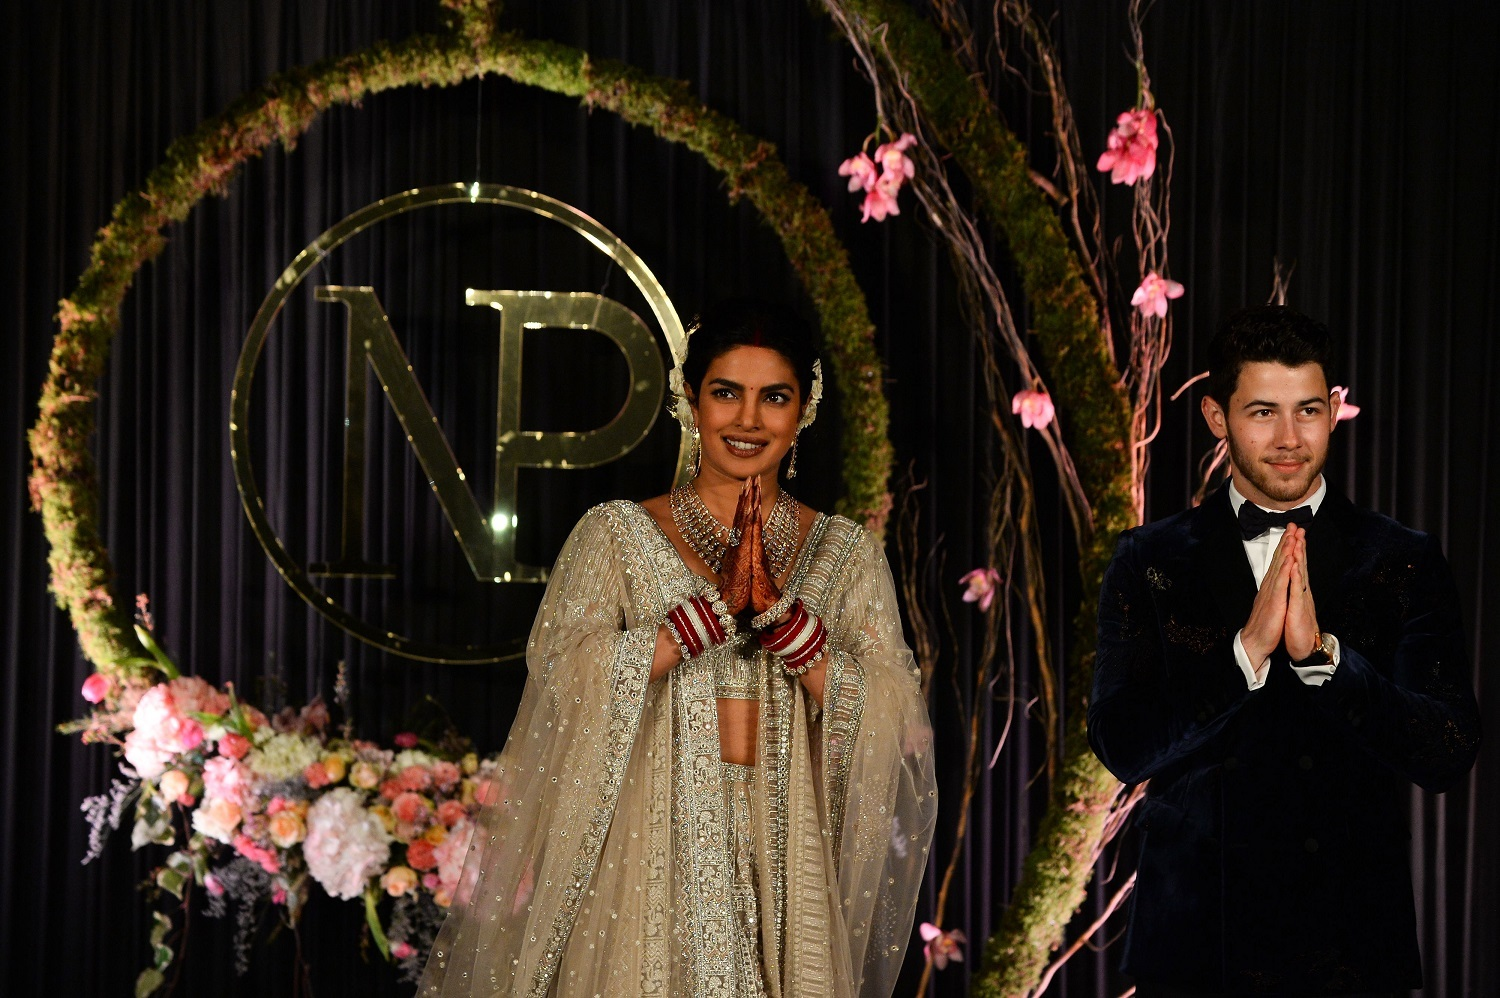 Indian actress Priyanka Chopra who recently married U.S. musician Nick Jonas poses for a picture during their reception in New Delhi on December 4, 2018. Chopra wears a custom-beaded Falguni and Shane Peacock design. (Sajjad Hussain/AFP/Getty Images)